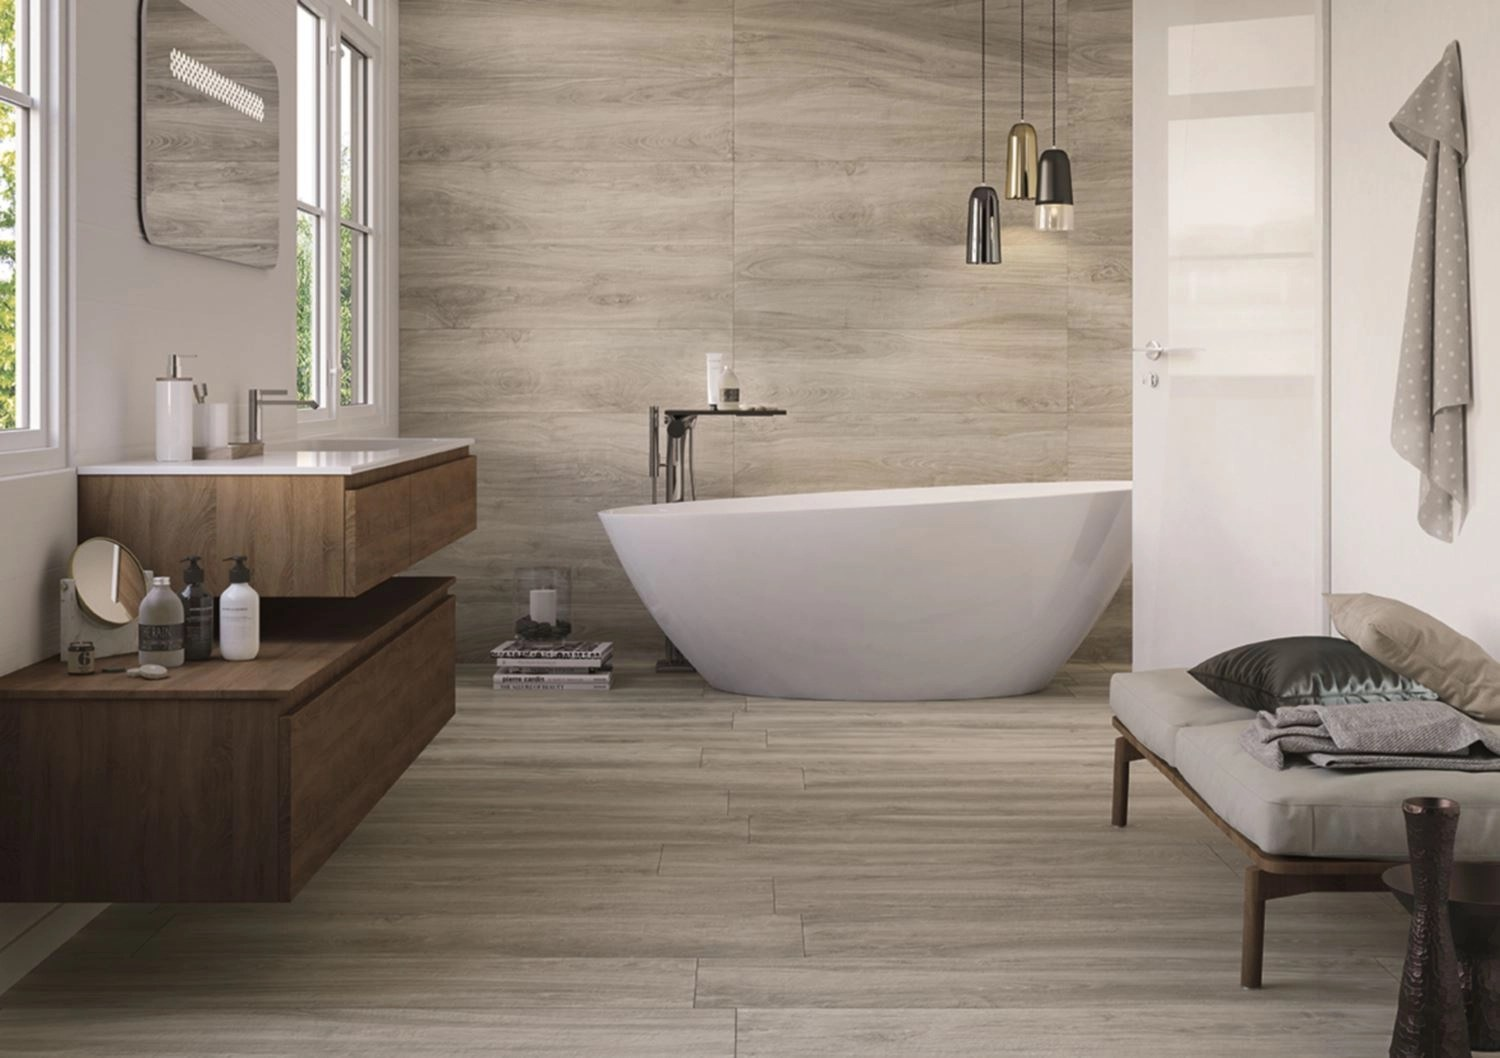 Bagno Tiles Buy Castelvetro Tiles Online More Tilesdirect Store